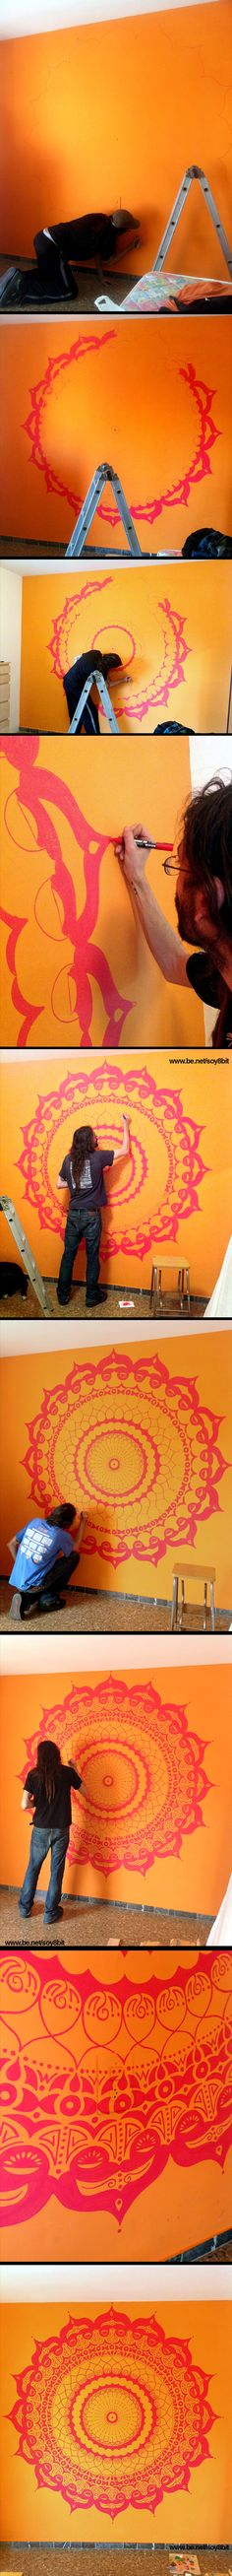 Mandala Wall Painting by Héctor Sánchez www.be.net/soy8bit